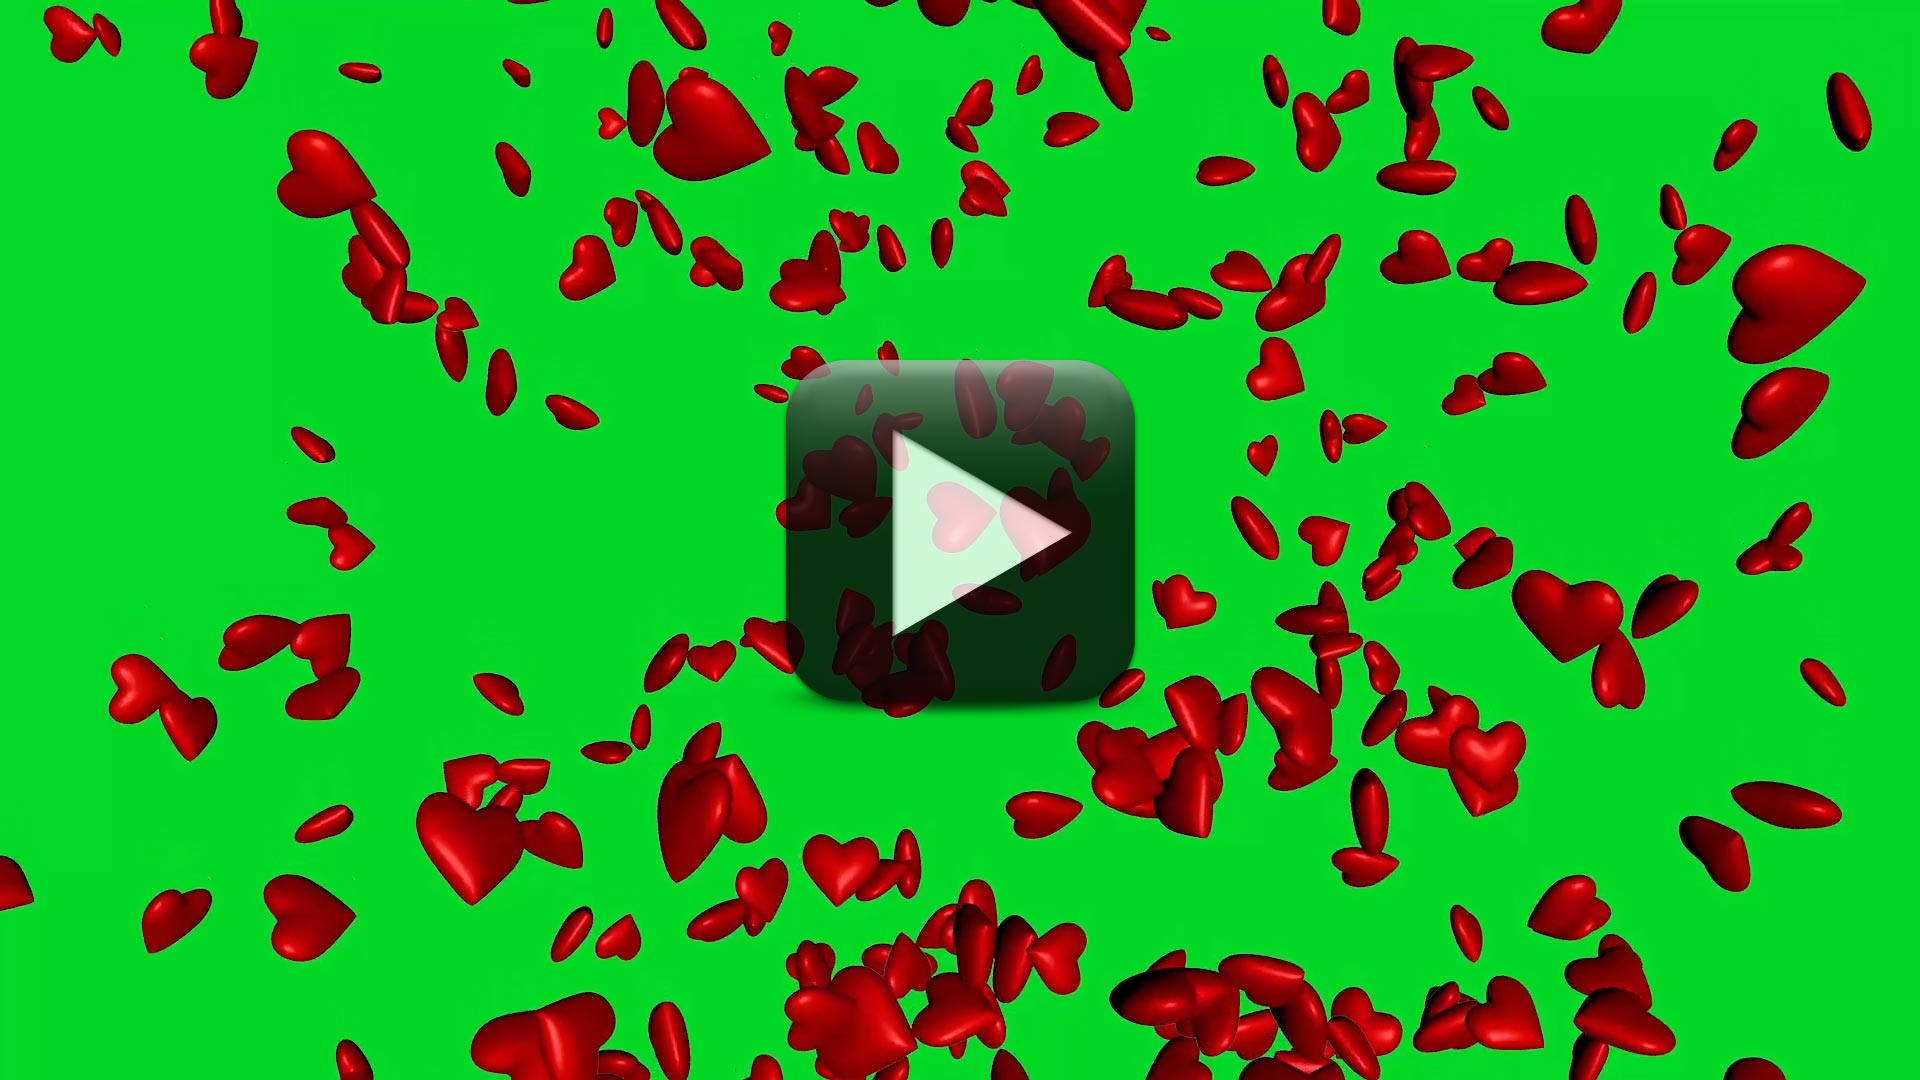 Falling Hearts Green Screen Effect